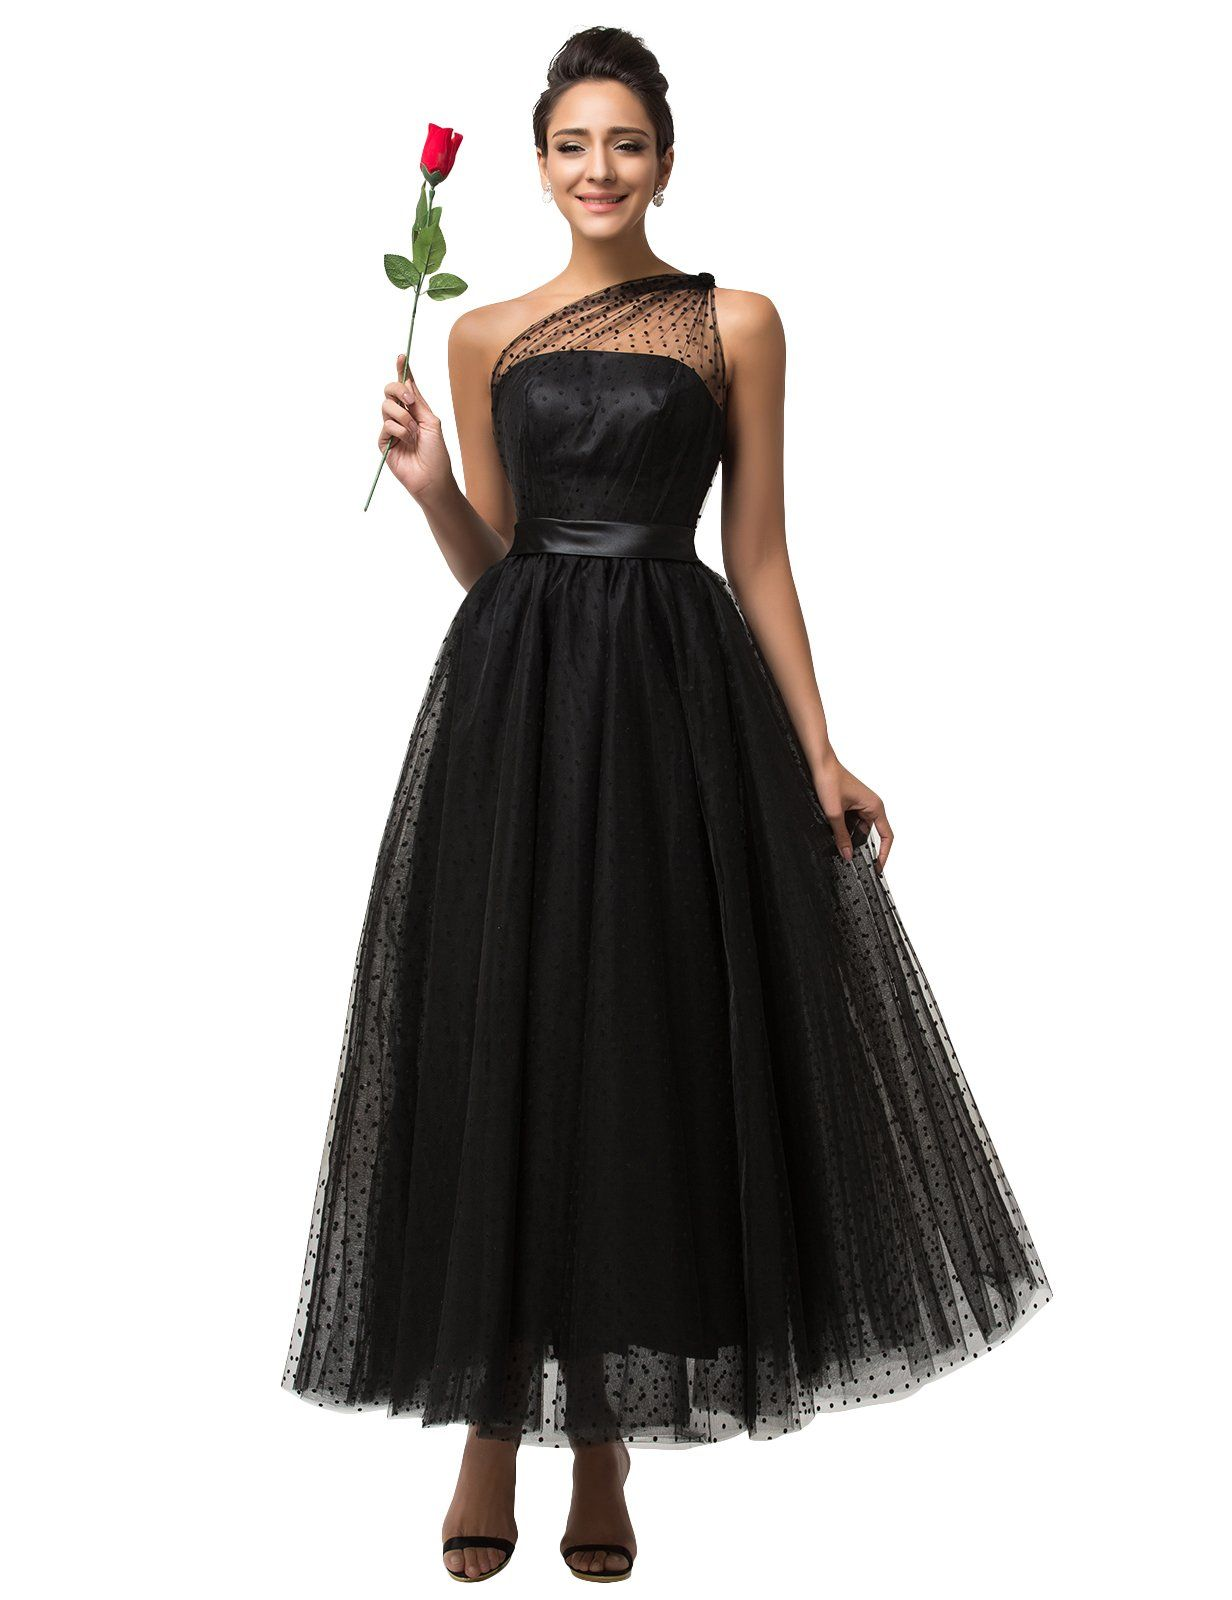 e7afdc21201 Dotted Tulle Maxi Dress - GRACE KARIN One Shoulder Black Celebrity Dresses  Formal Party Evening Prom Dress UK6-20. Amazon.co.uk  Clothing